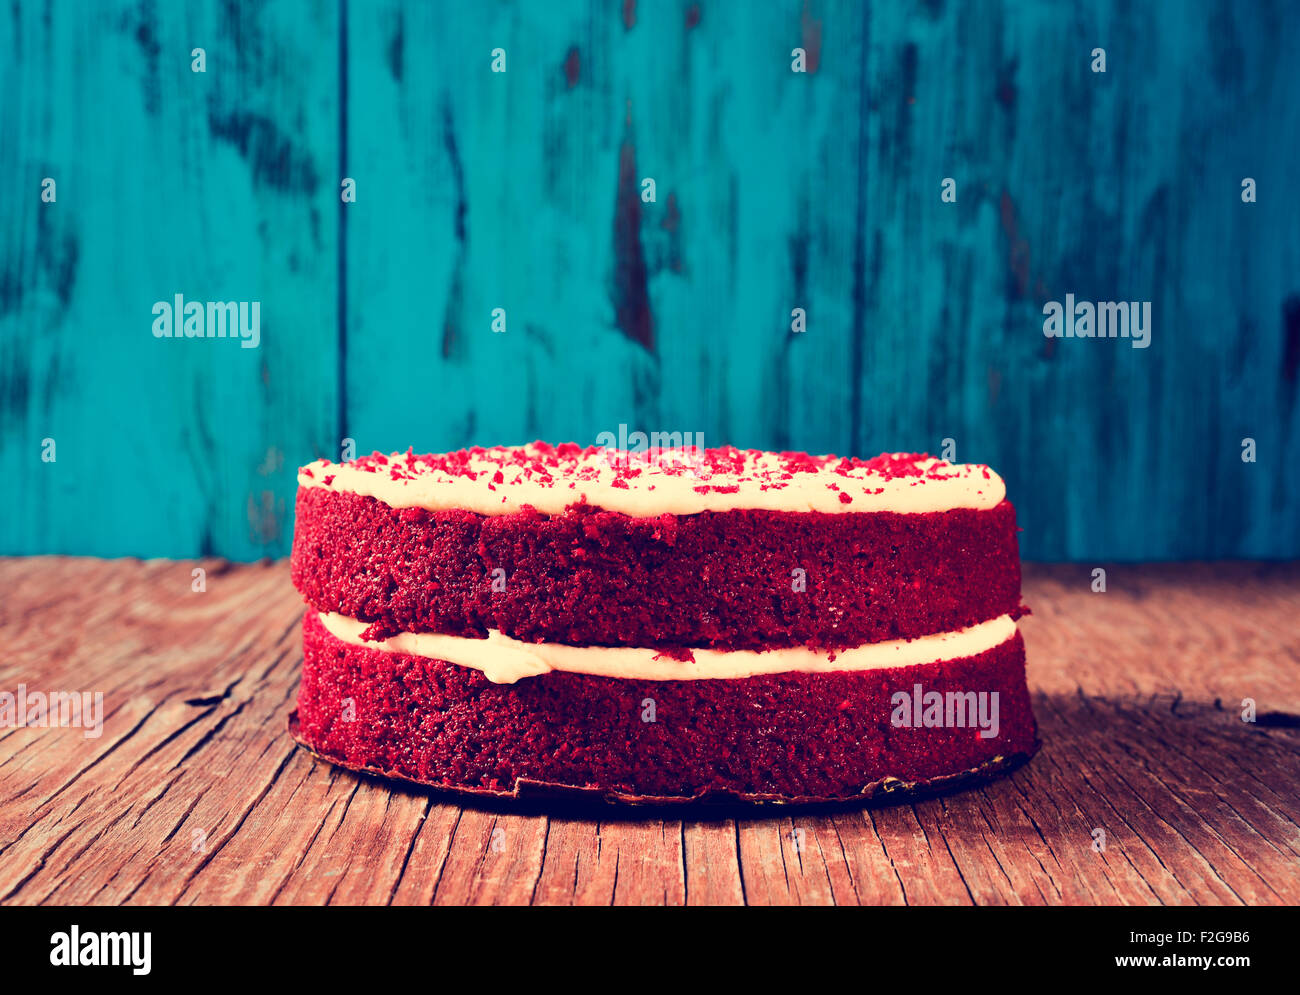 A Red Velvet Cake On Rustic Wooden Table And Blue Background With Filter Effect